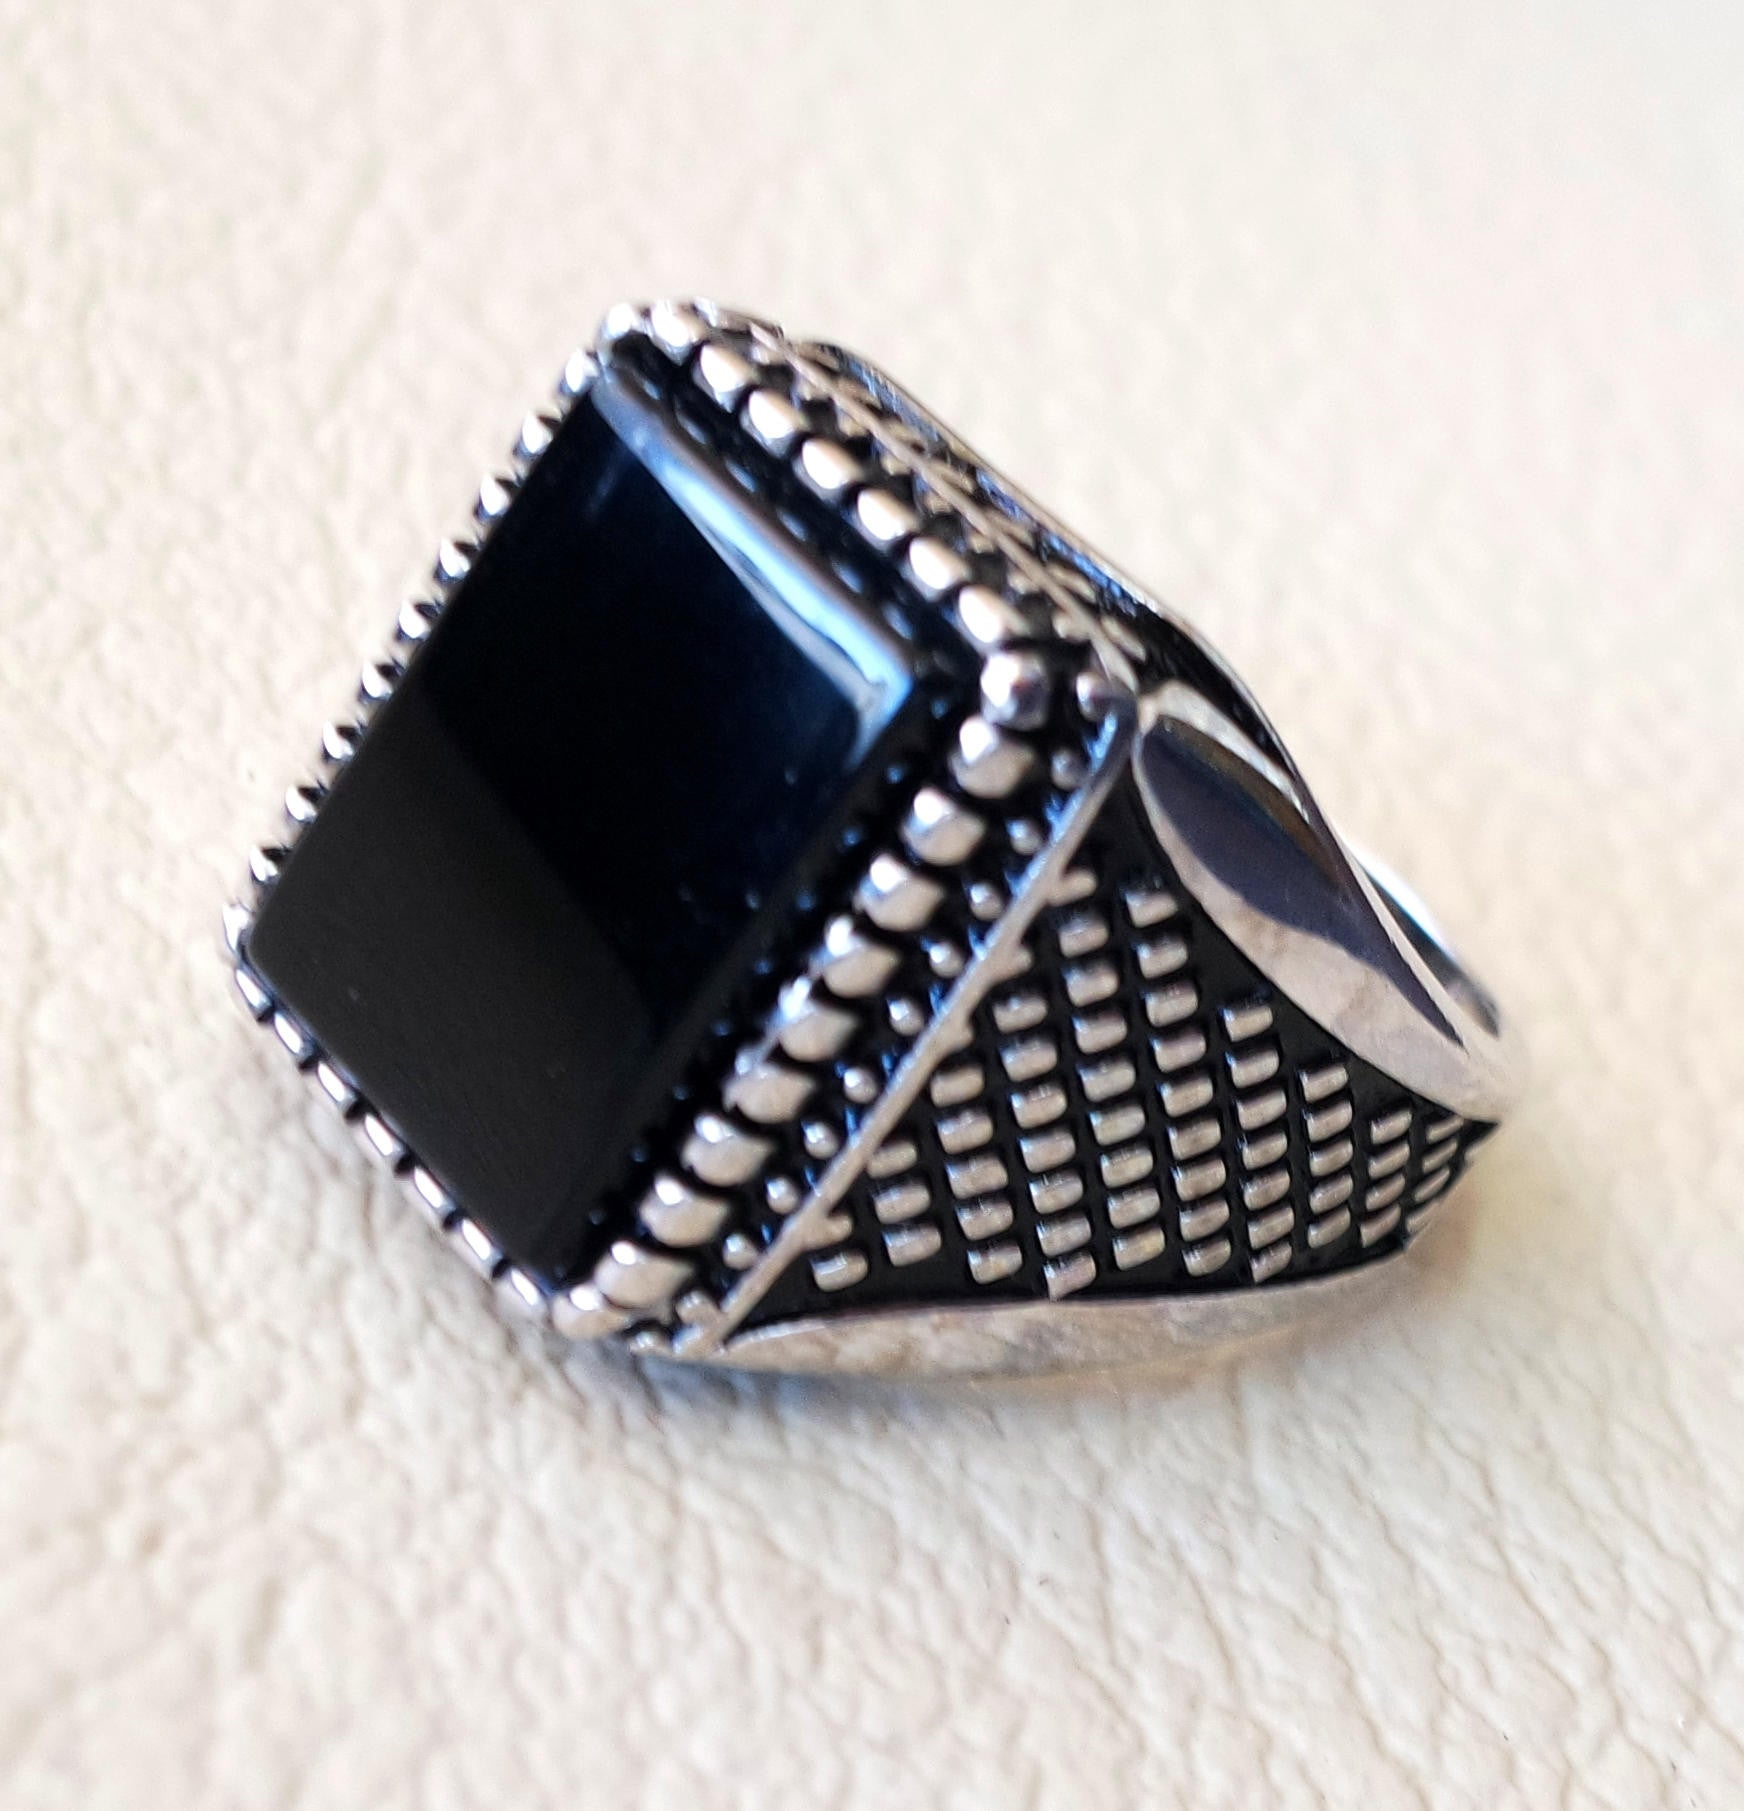 Black aqeeq ring Rectangular silver onyx flat natural semi precious agate gemstone men sterling silver 925 jewelry all sizes fast shipping